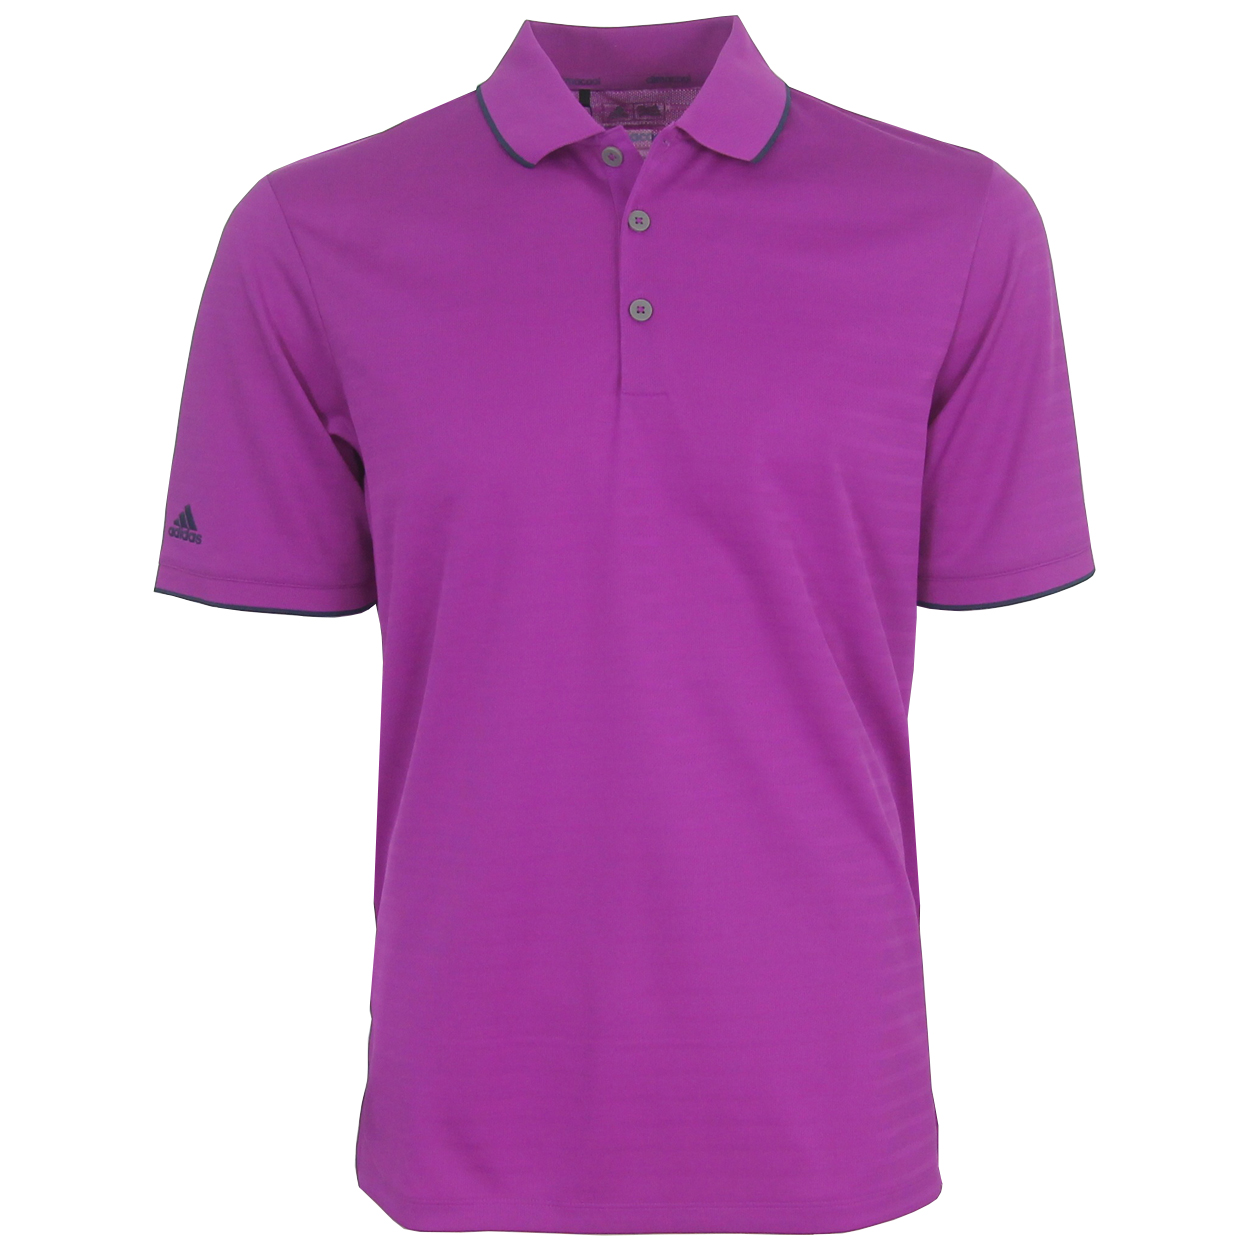 Adidas golf men 39 s climacool tipped club polo shirt brand new for Polo brand polo shirts